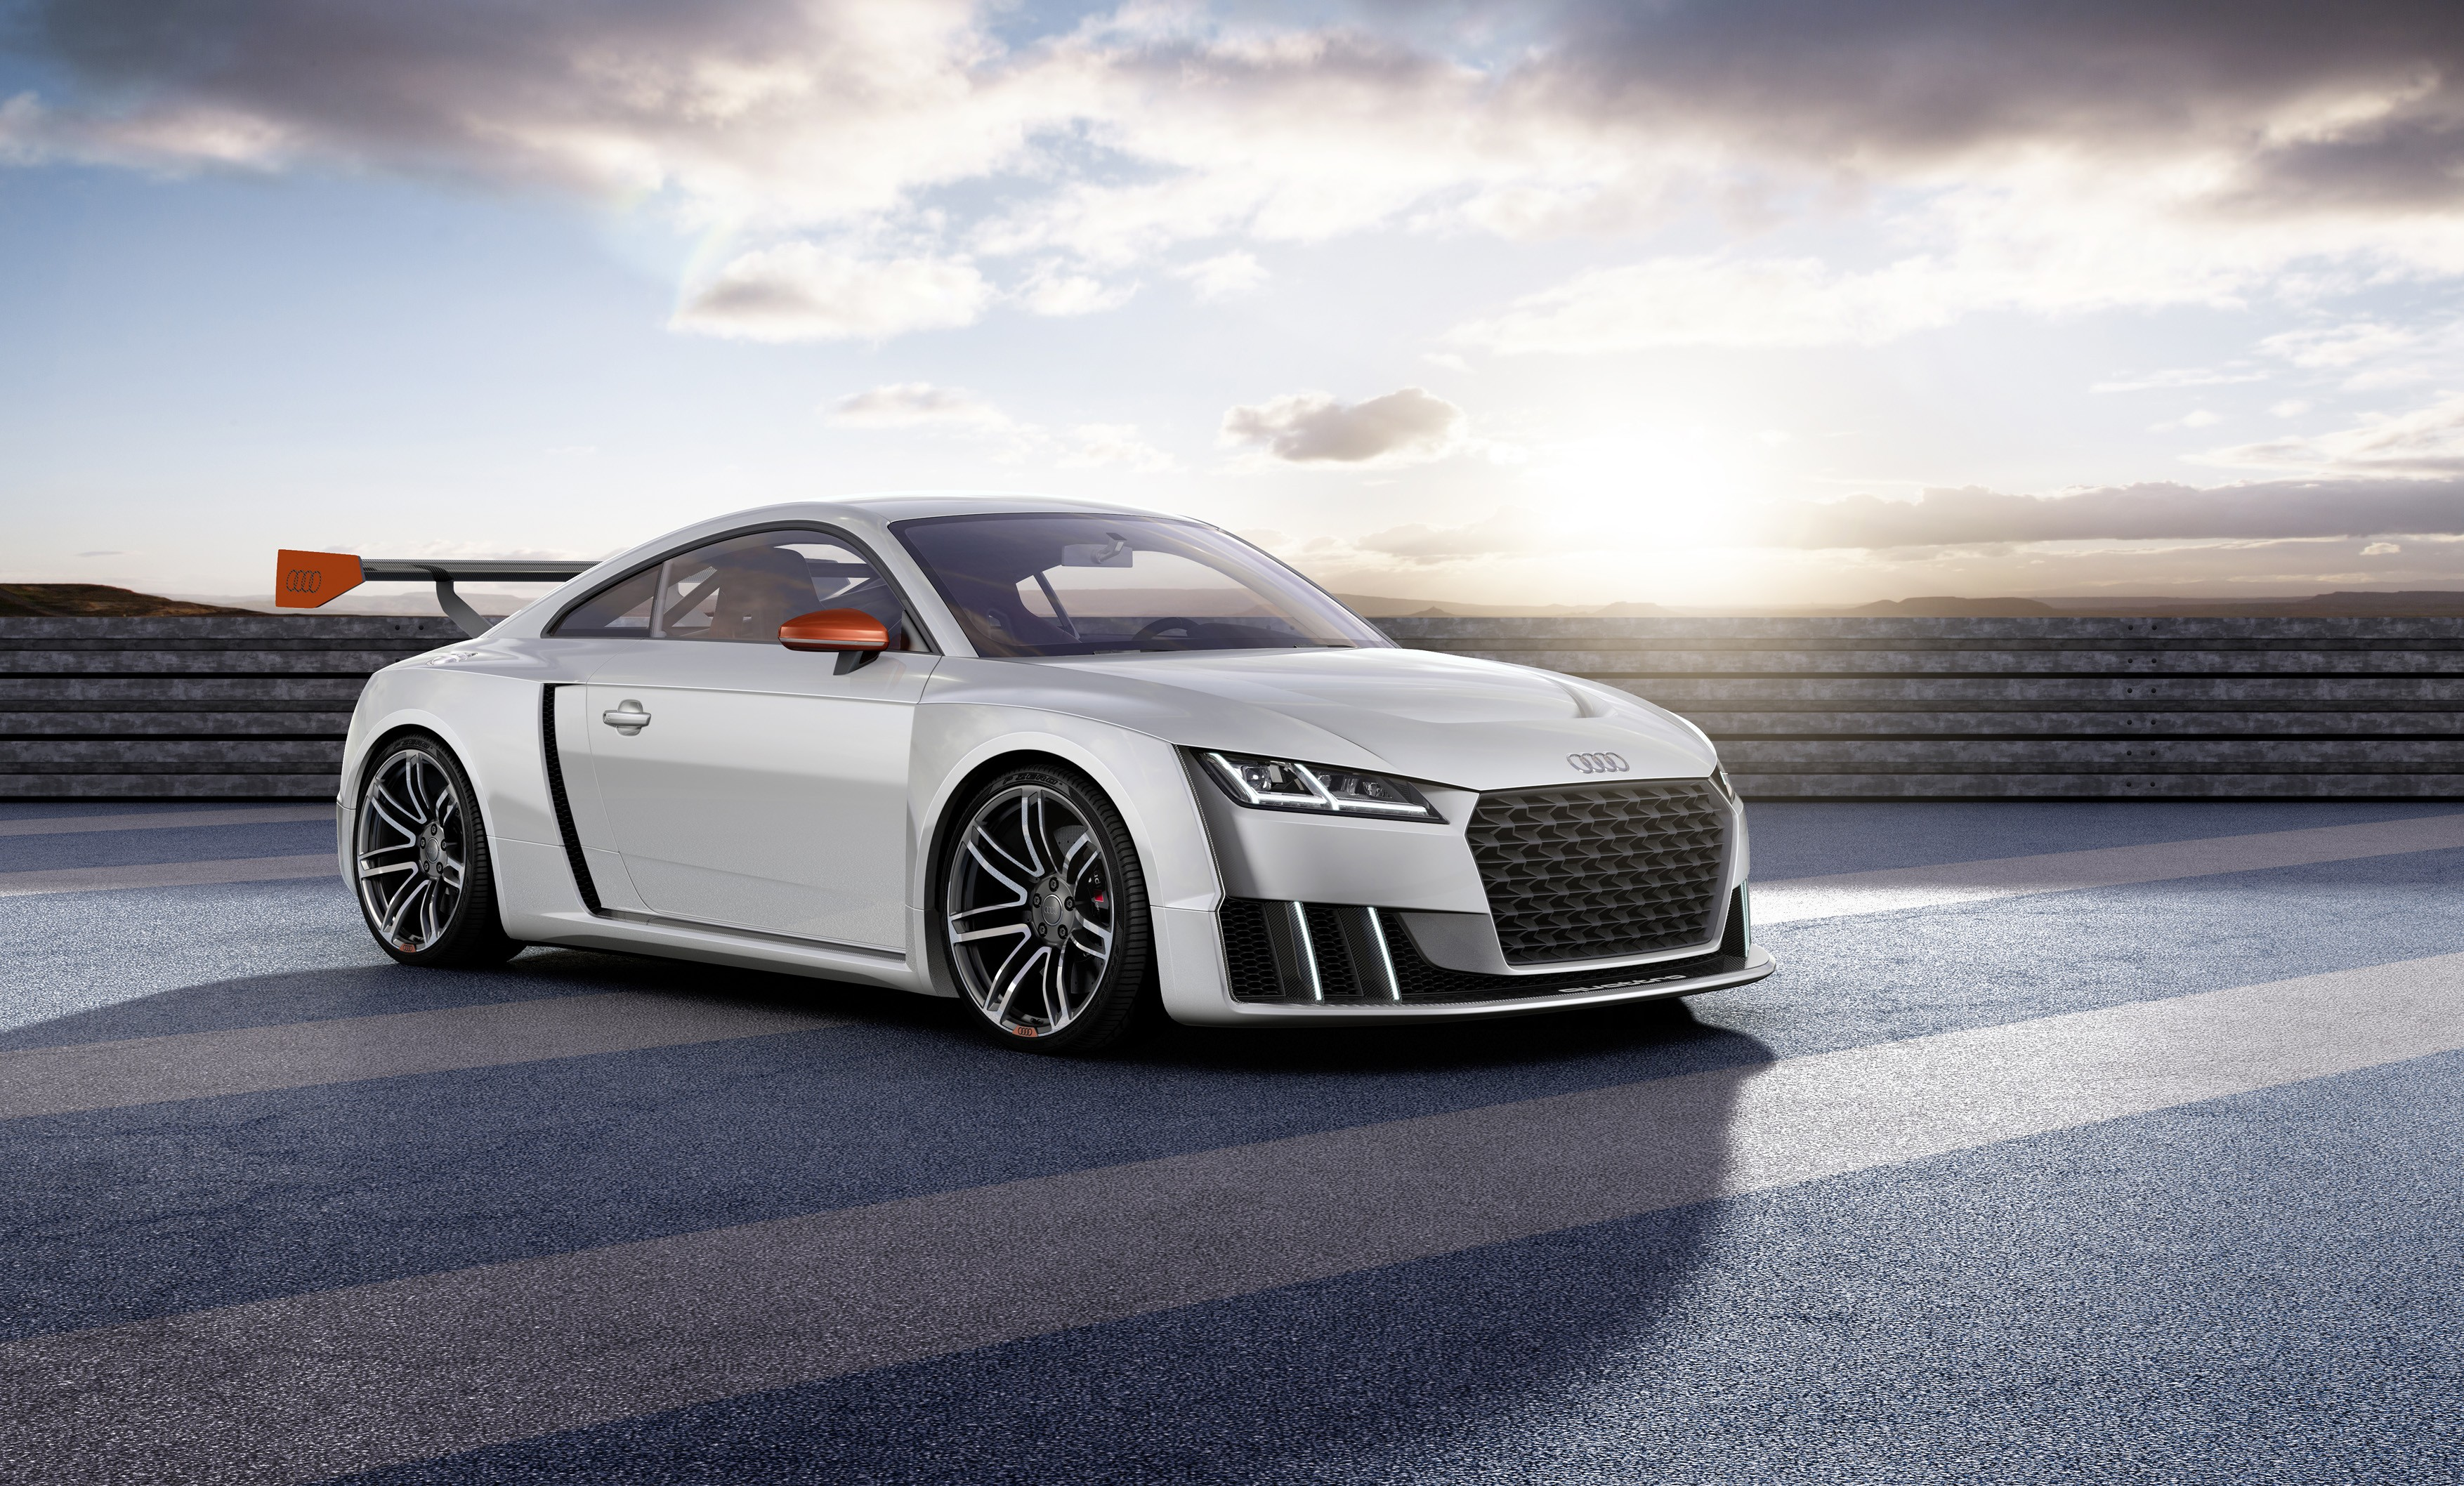 2015 Audi TT Clubsport Turbo Concept 1 2015 Audi TT Clubsport Turbo Concept